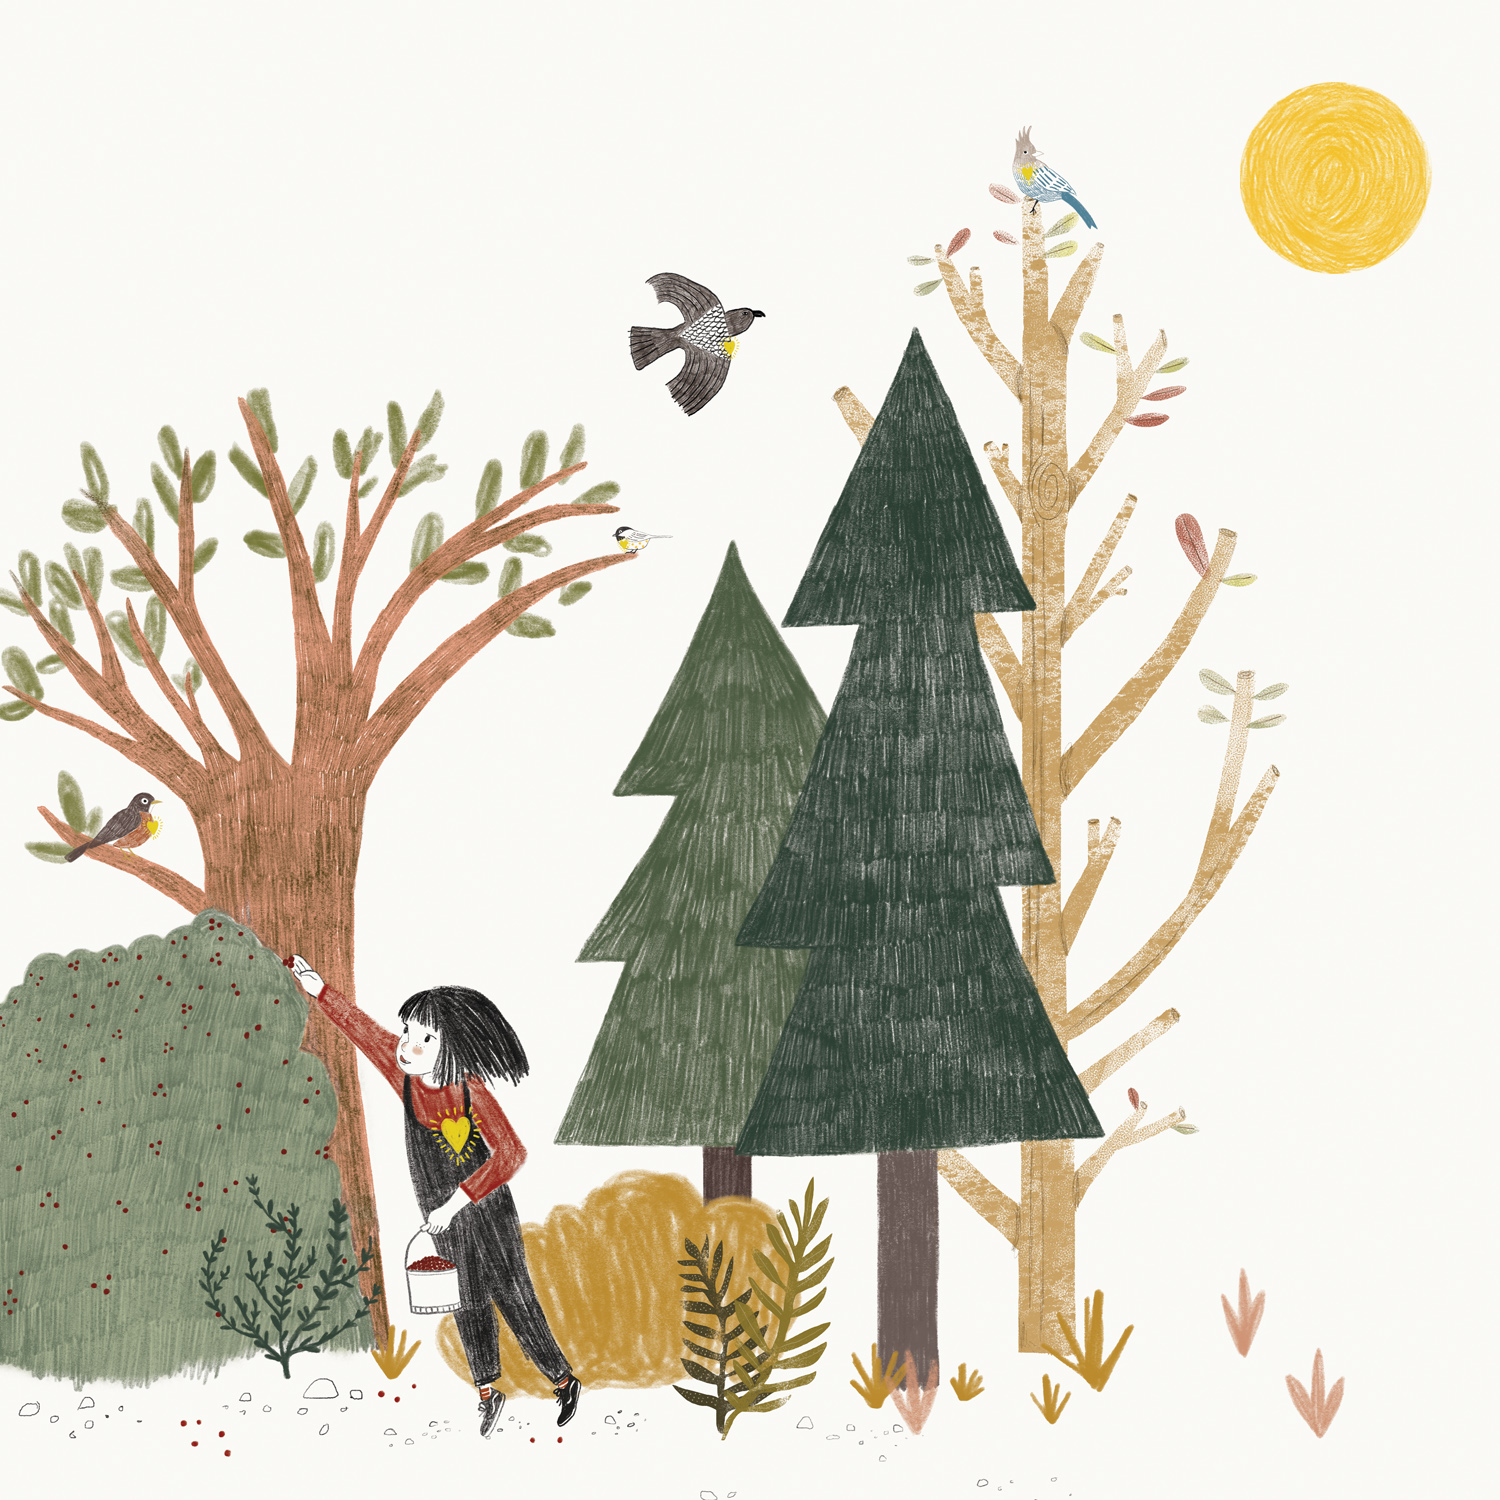 The Girl and Her Sun (Children's book)   This endearing picture book about a girl with a sun inside her heart teaches a simple but meaningful lesson: What you give to the world, you get back.